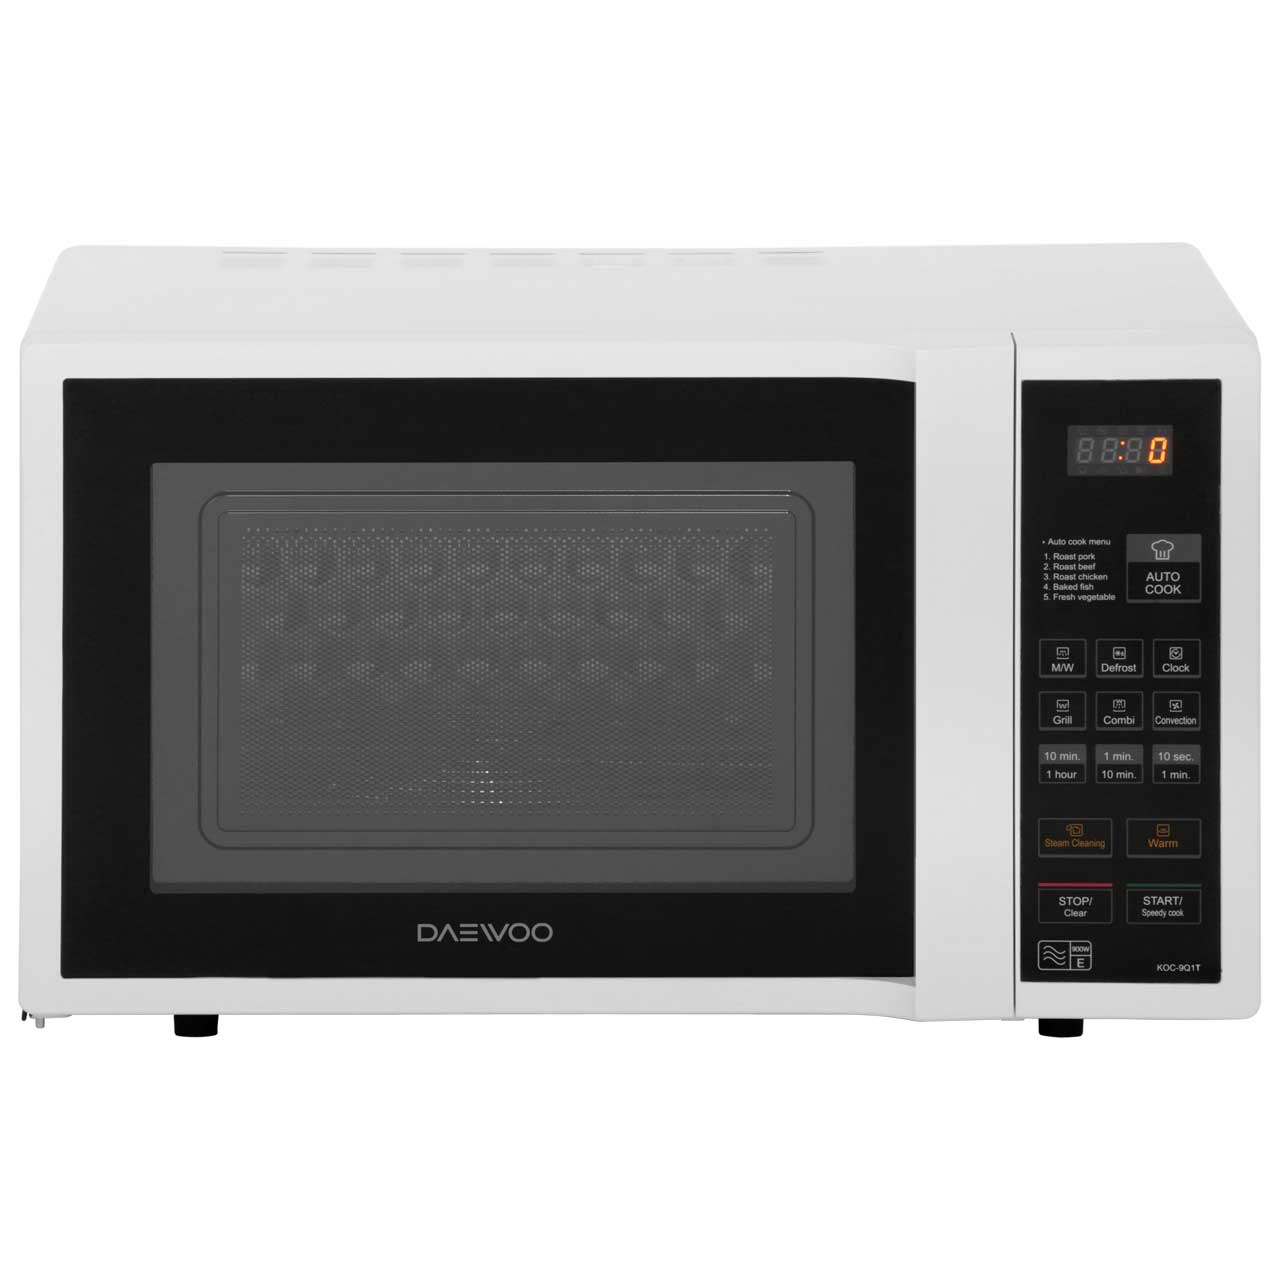 Daewoo KOC9Q1T 28 Litre Combination Microwave Oven - White